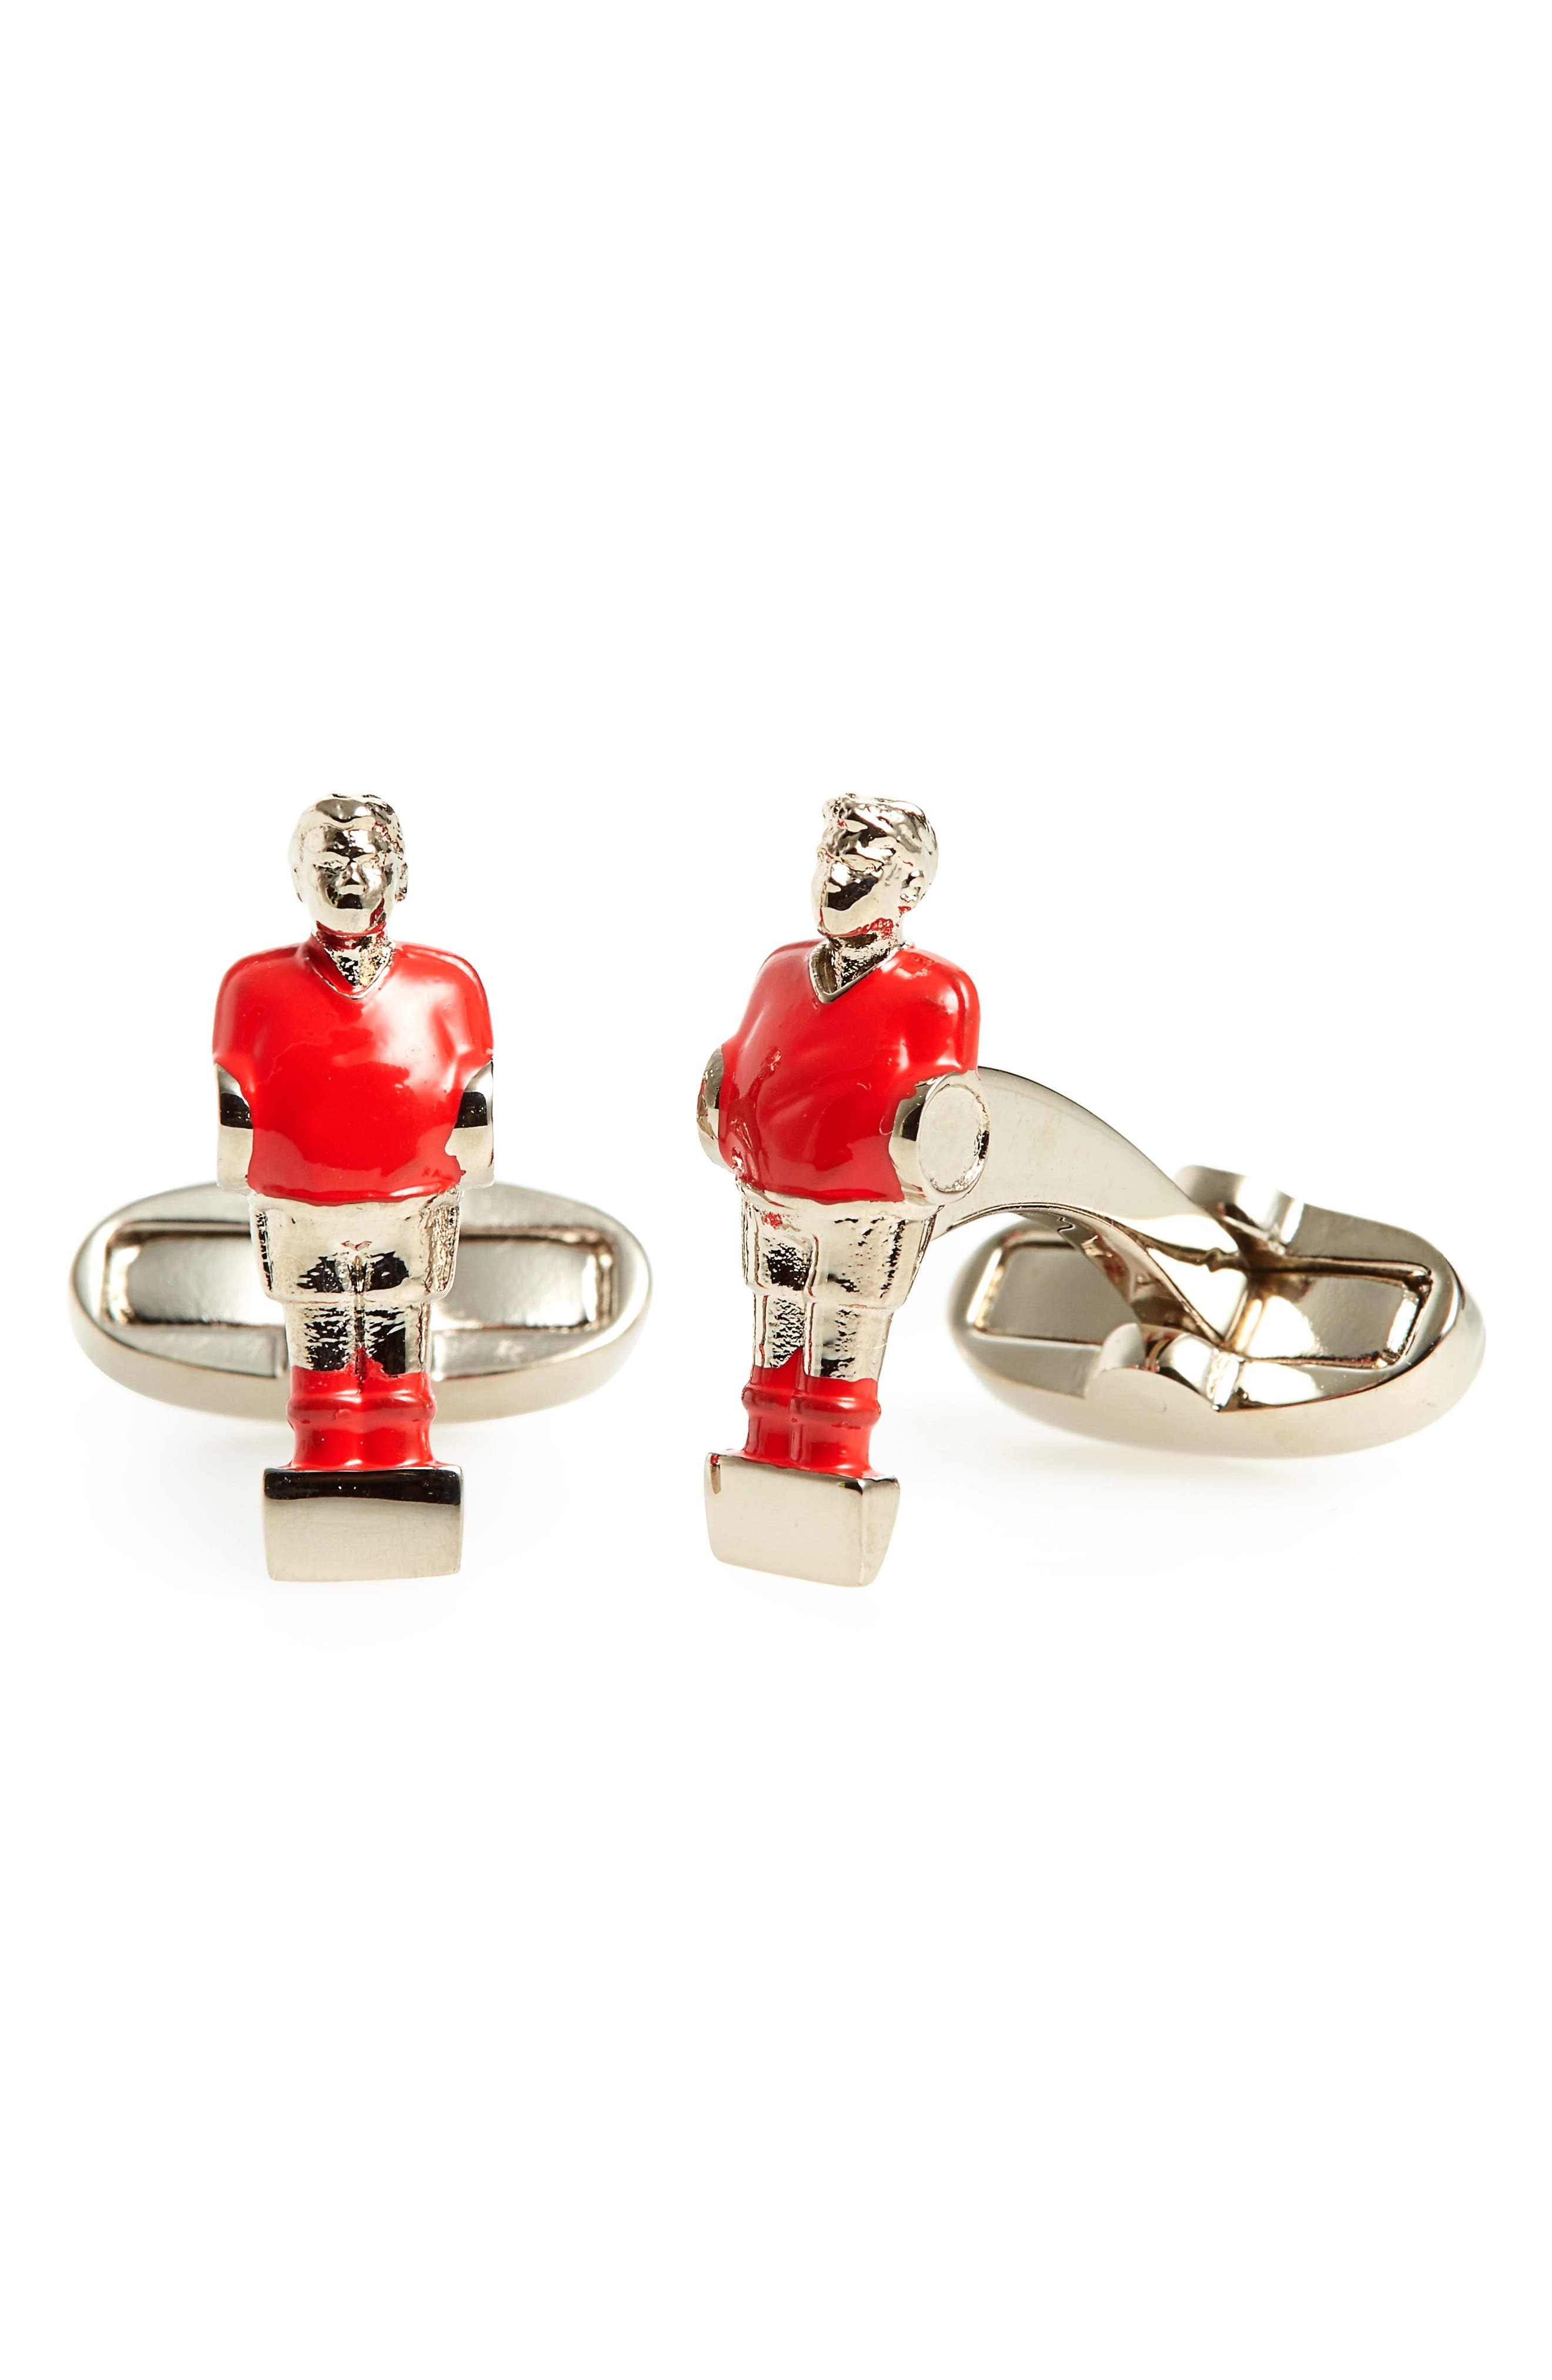 Foosball Cuff Links,                         Main,                         color, 25-RED